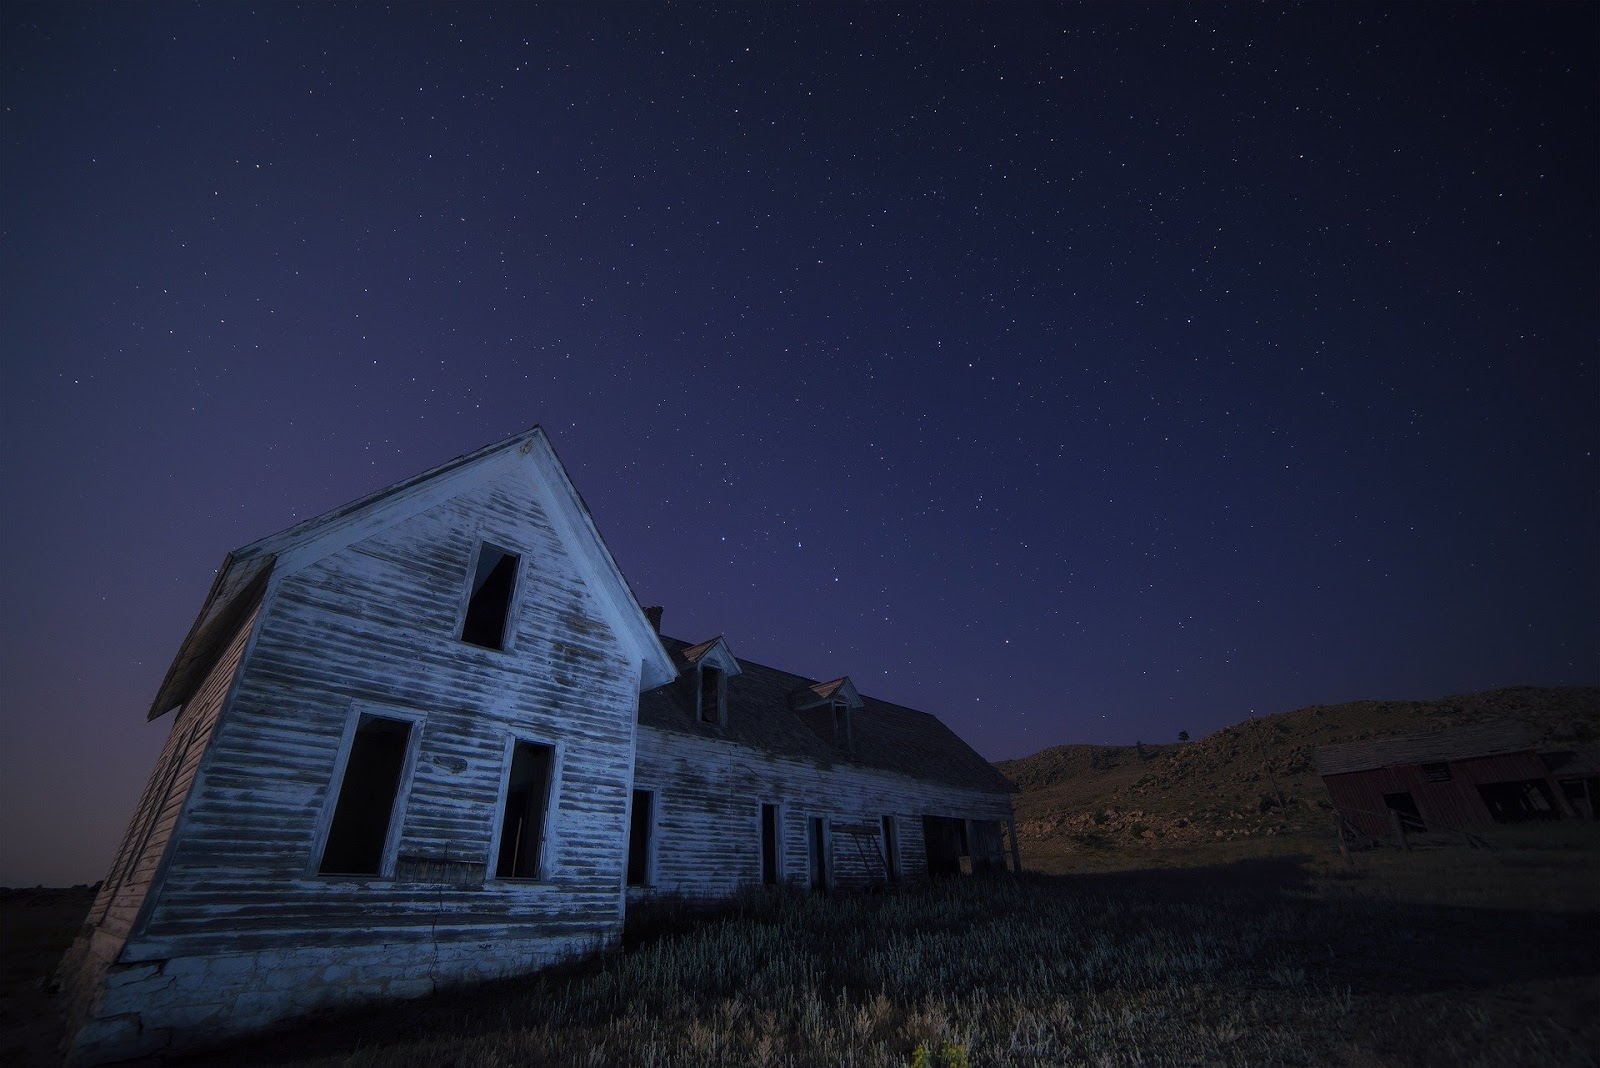 abandoned farm house with dark night in background for blog post about horror war movies